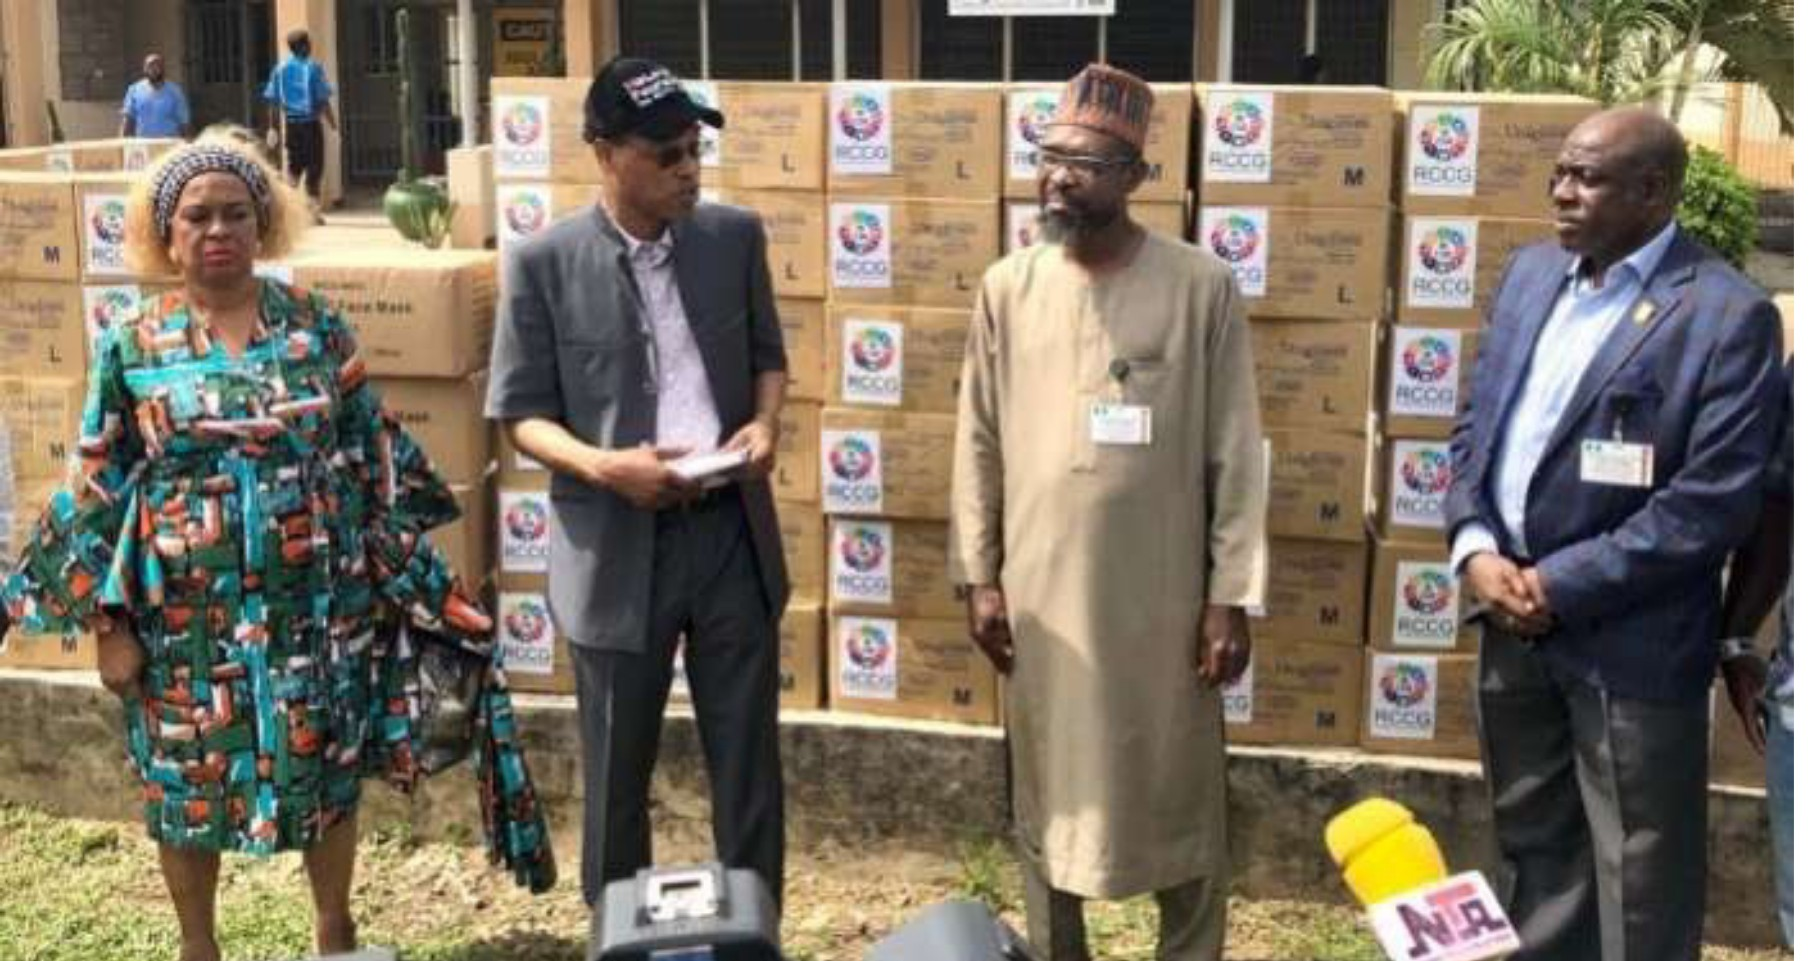 COVID-19: Adeboye donates surgical masks, hand gloves to Lagos govt